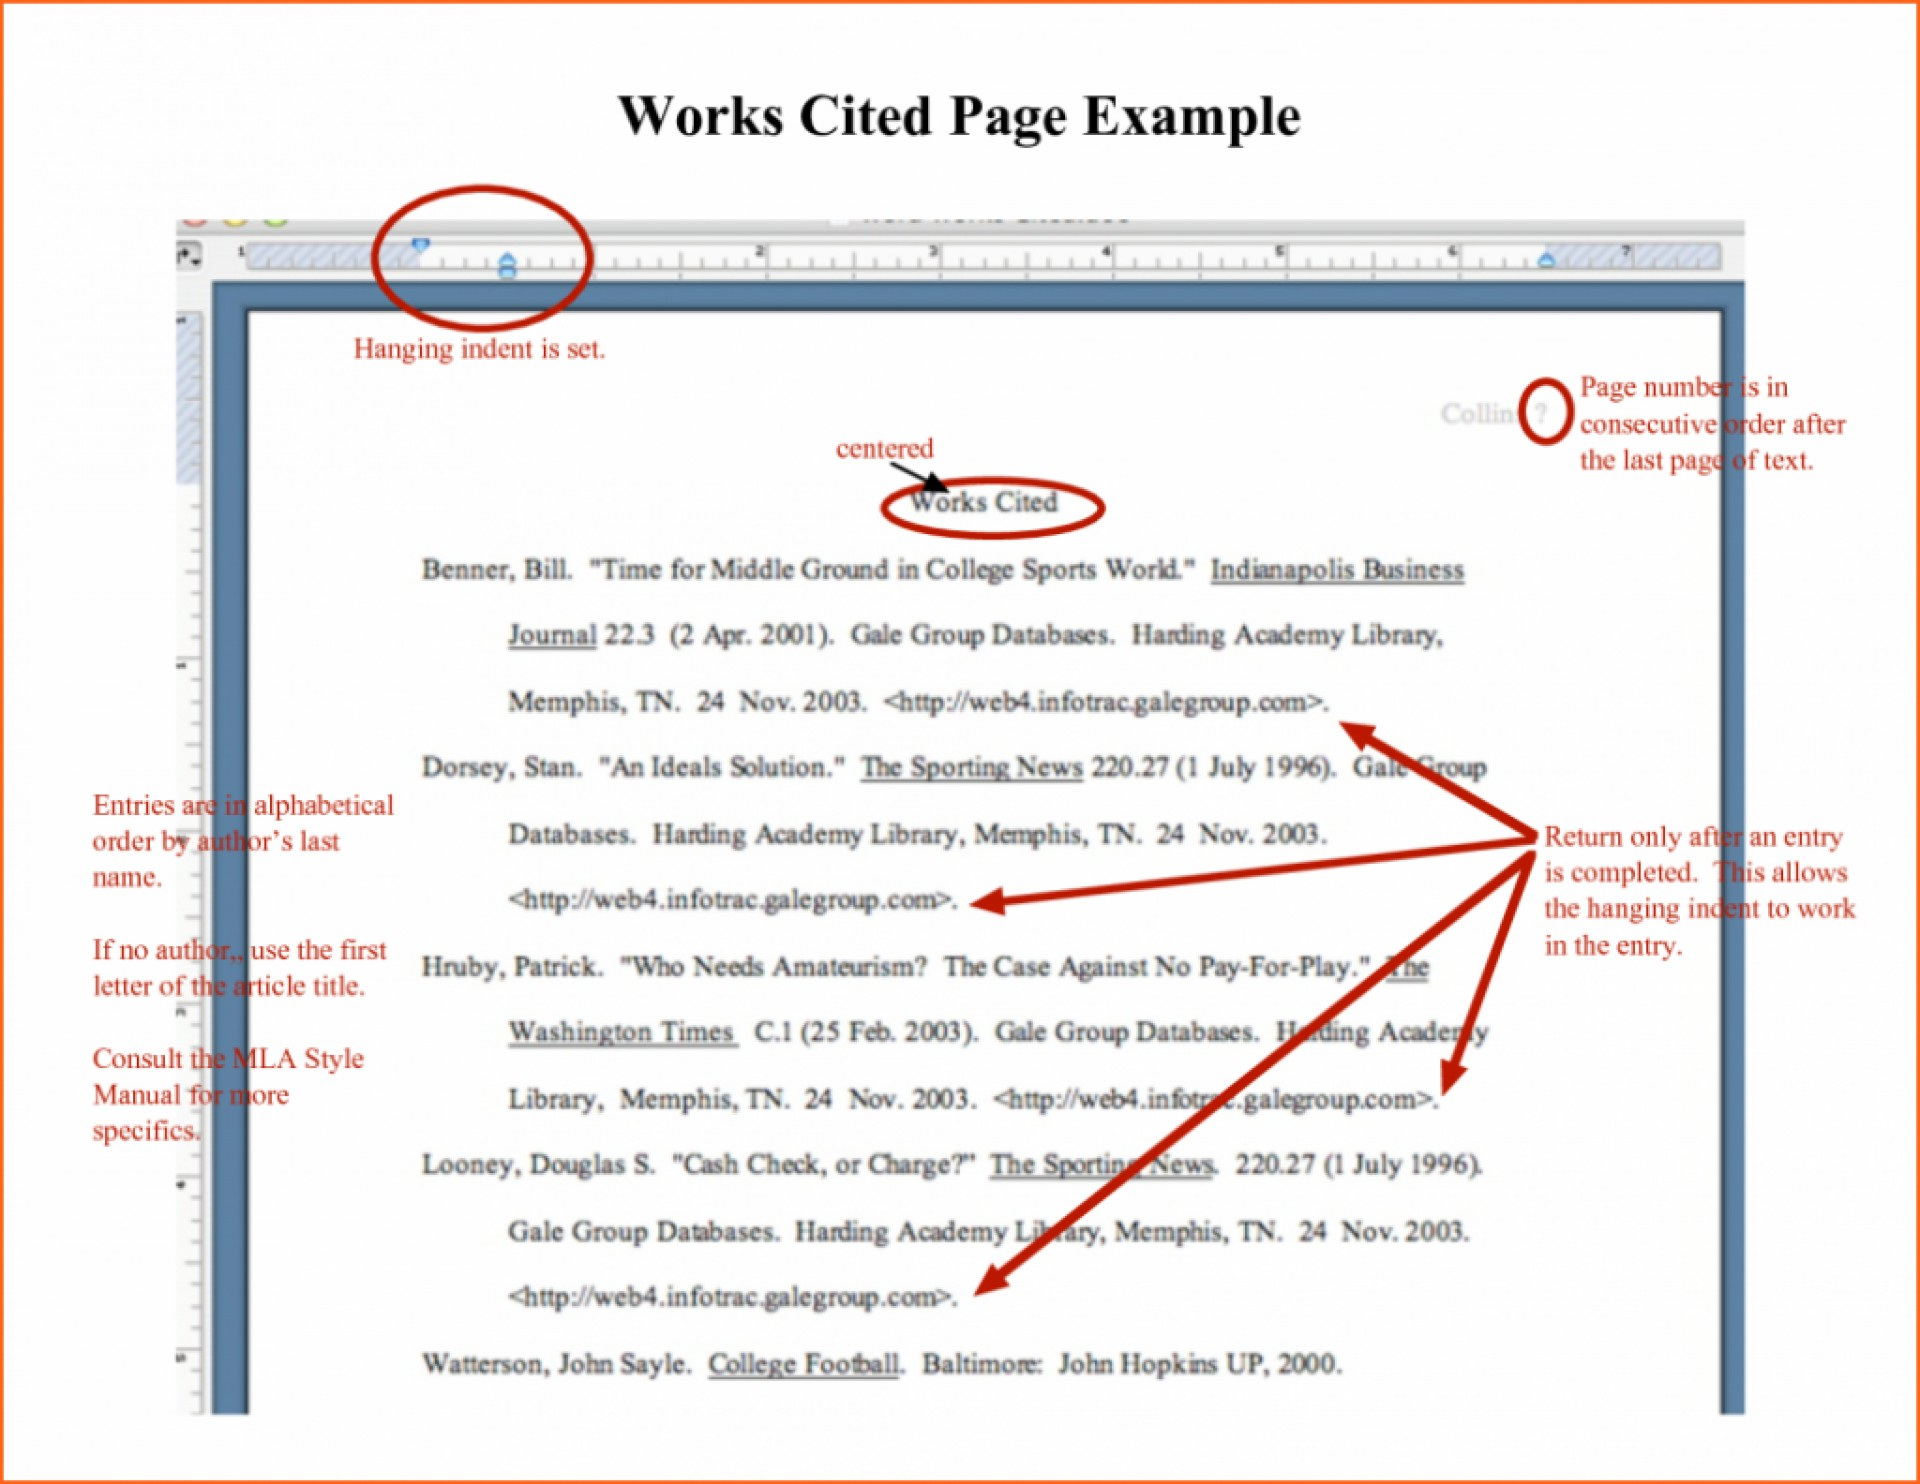 020 Citing Research Paper Mla 20example Of Citation In Essay With Works Cited What Is Page Excelent Samples Writing20 Impressive A Citations How To Cite 8 Using Format 1920